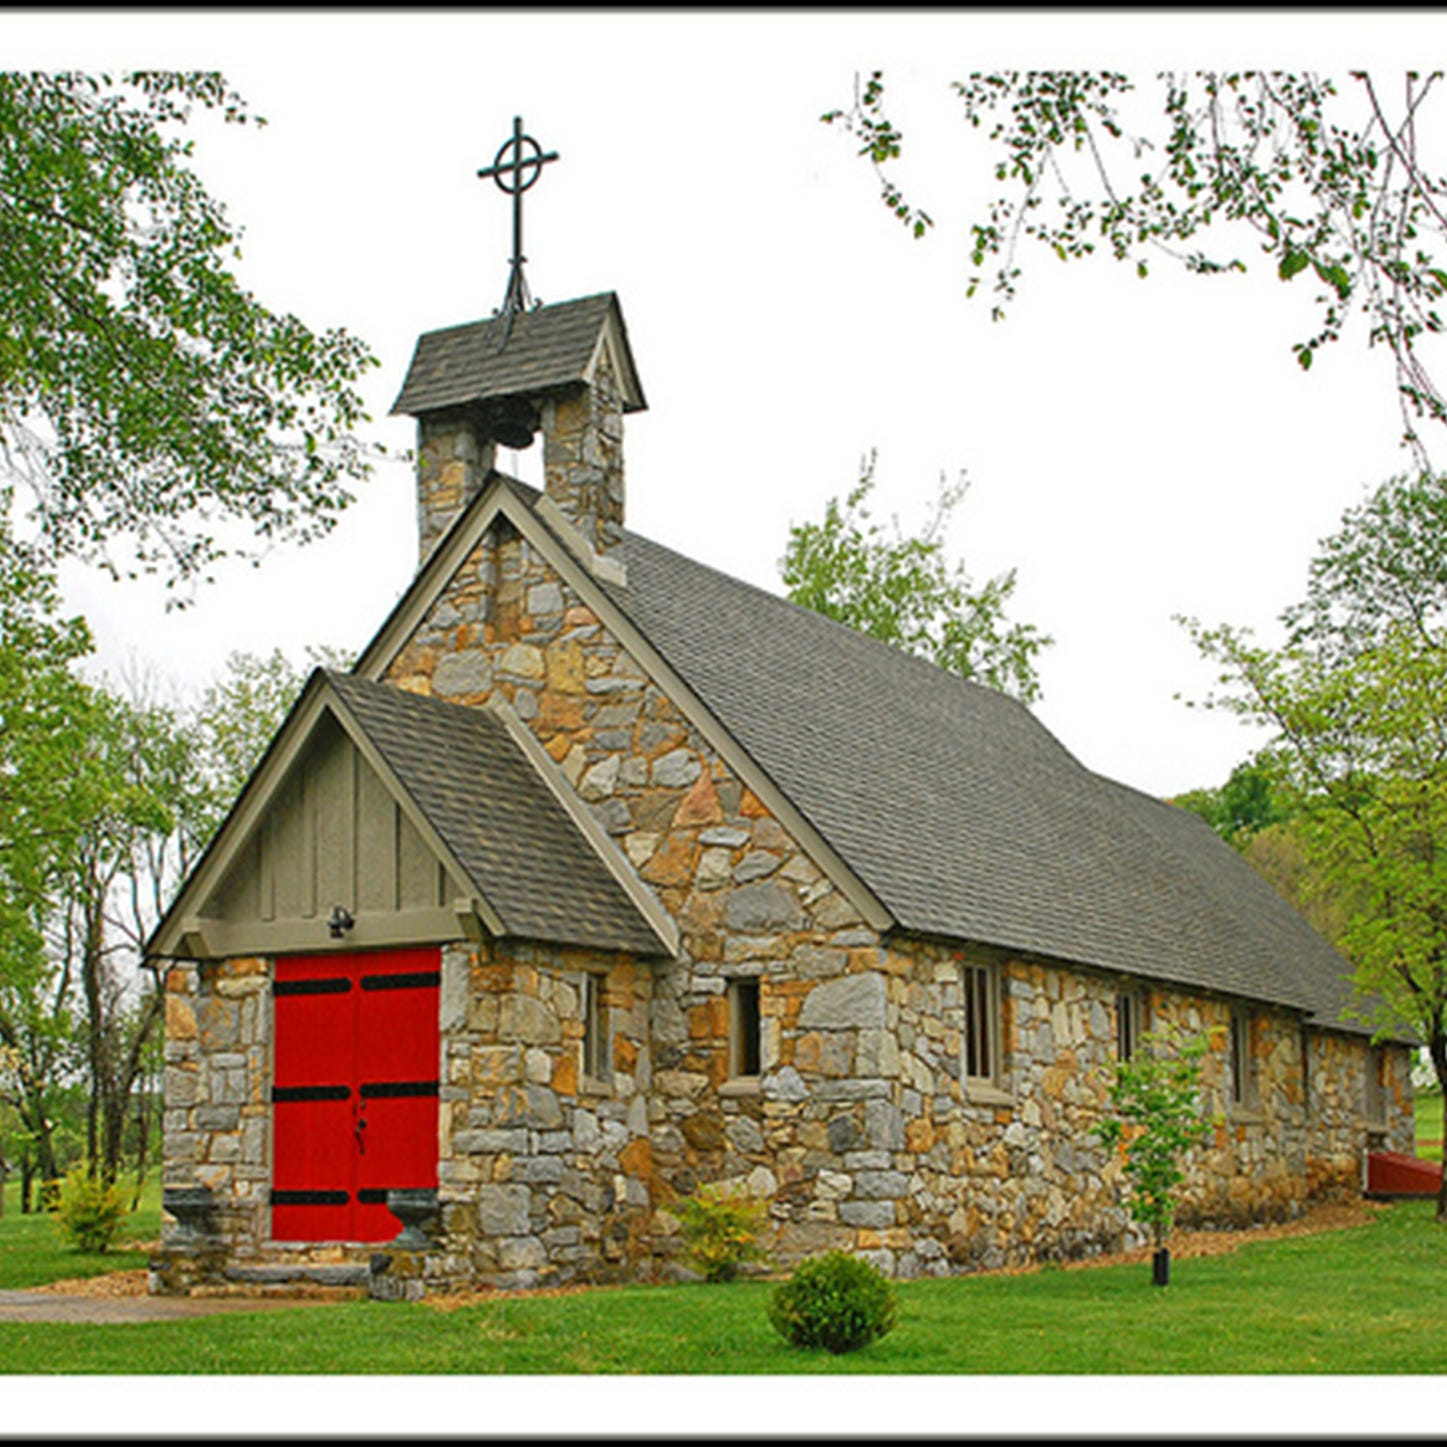 Stone church with red doors has fascinating history